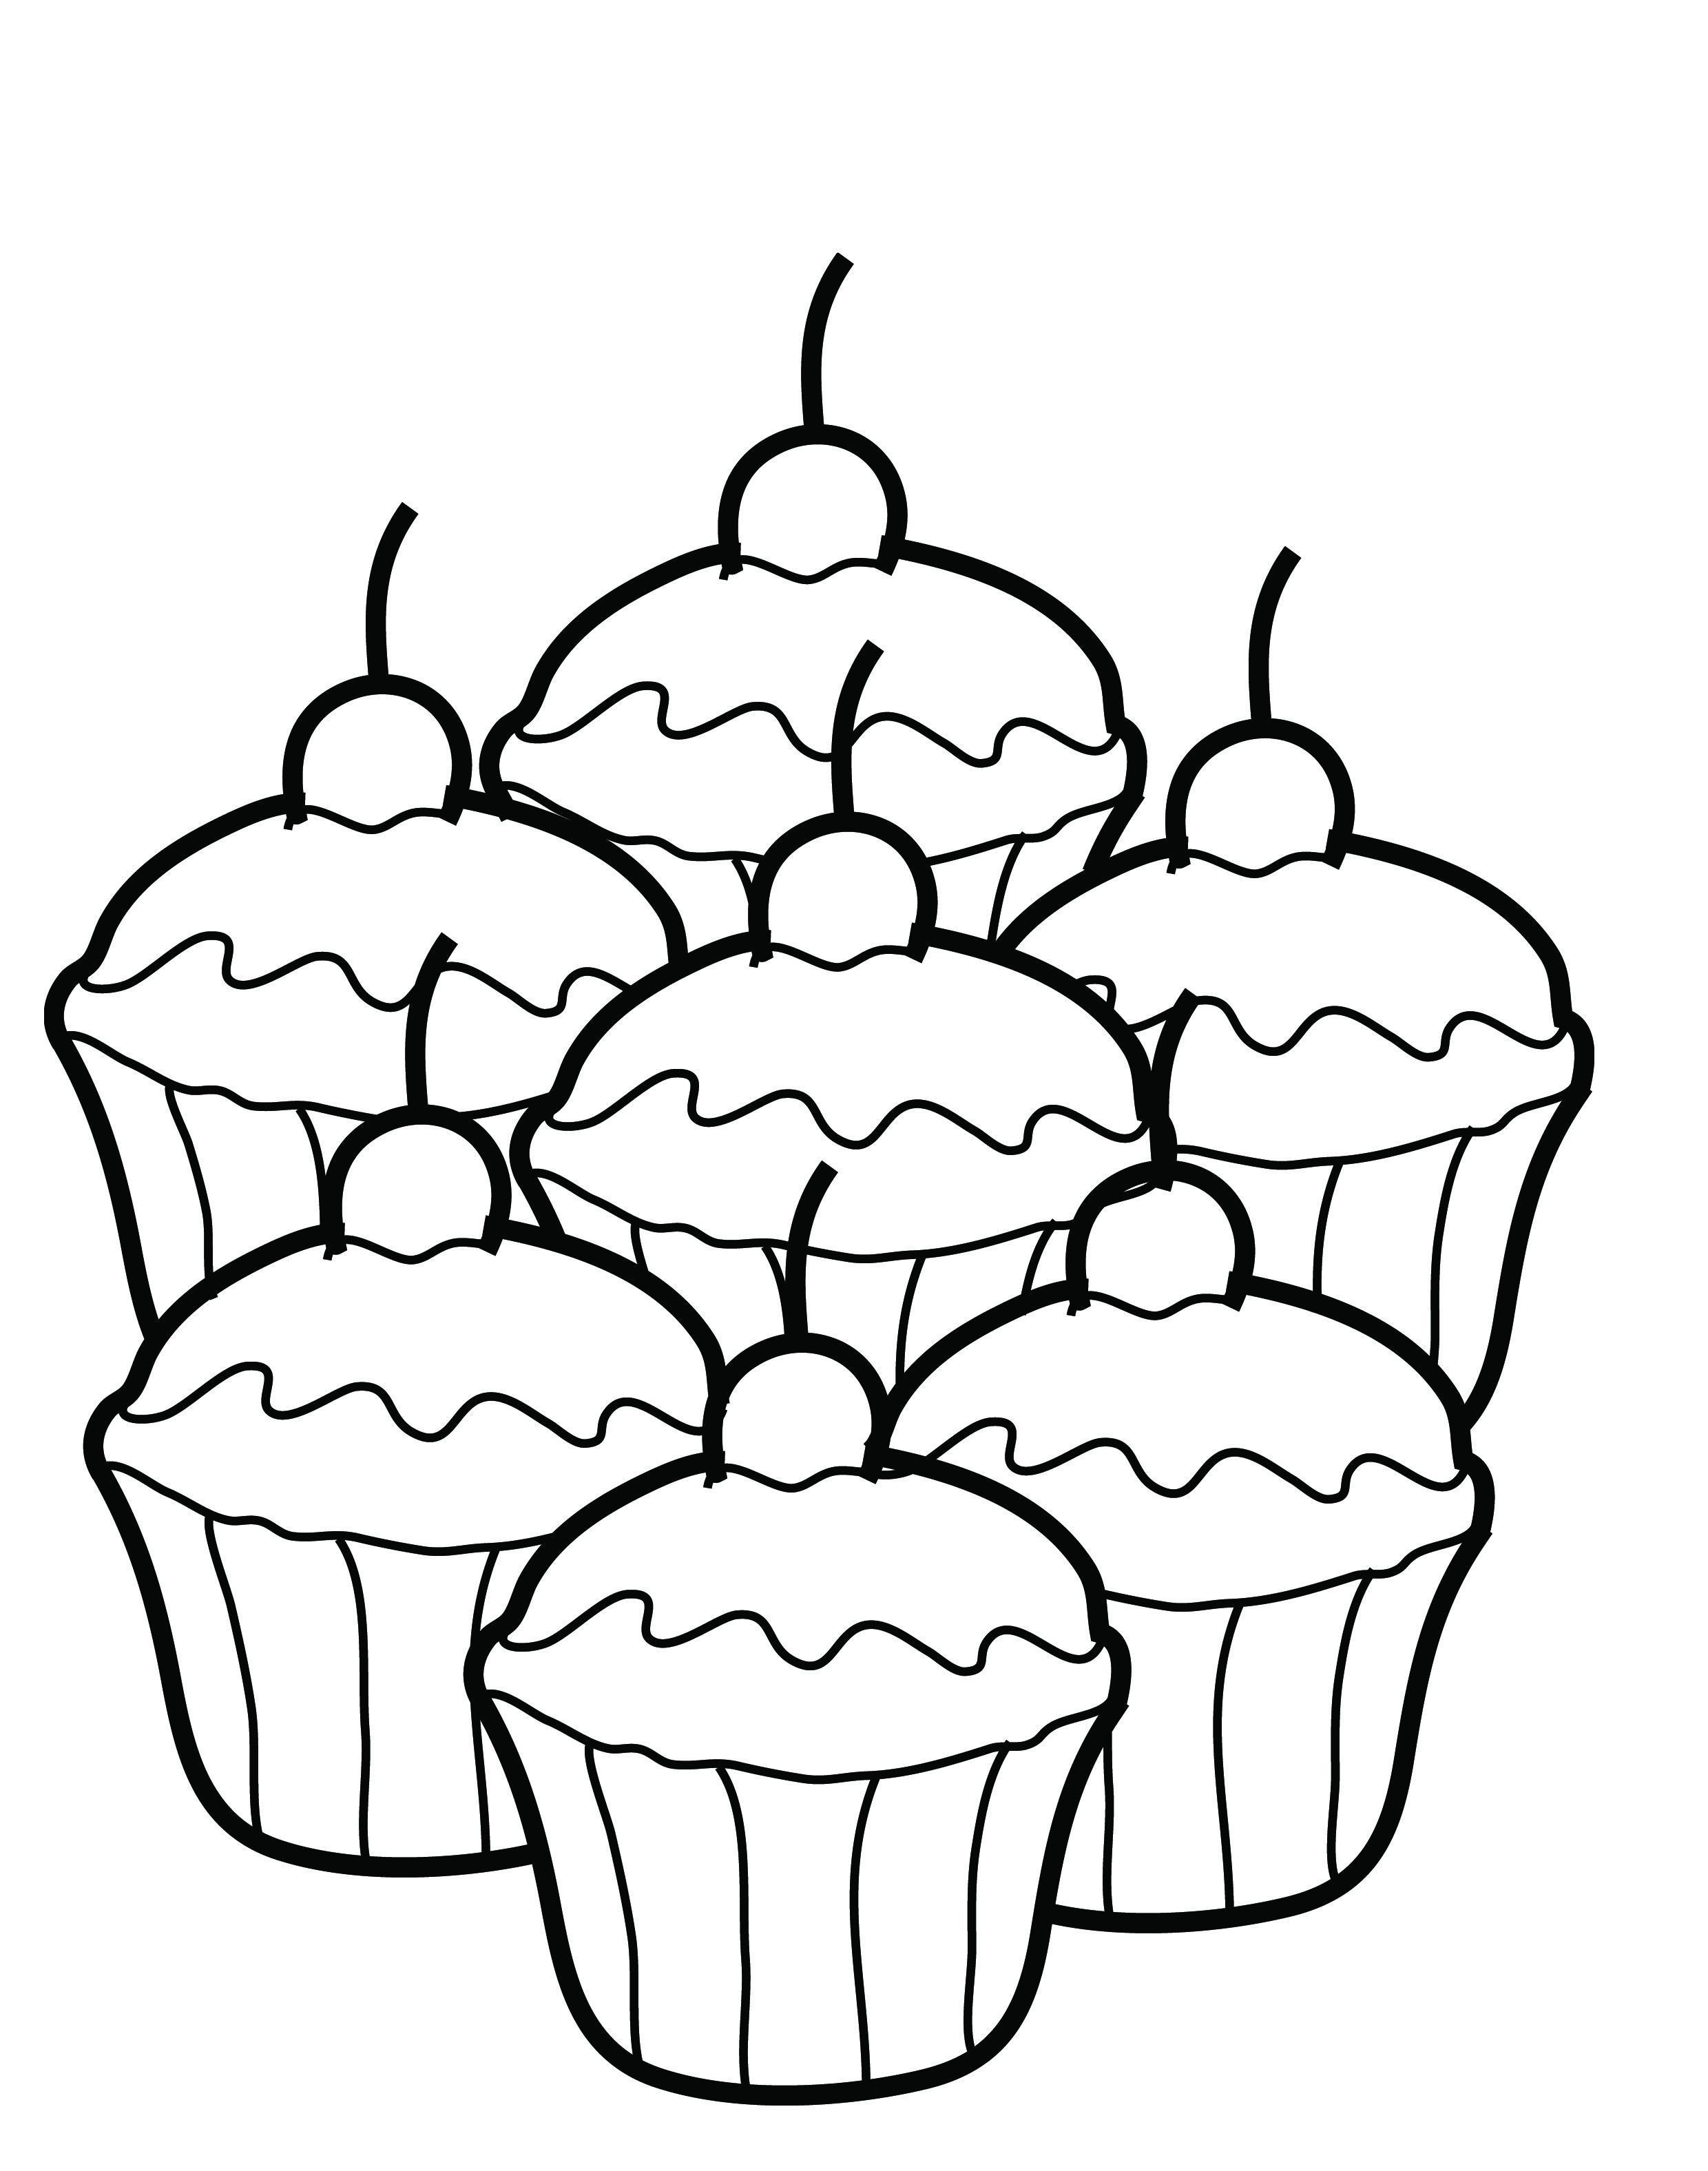 cupcake coloring pages for kids - Coloring Page For Kids